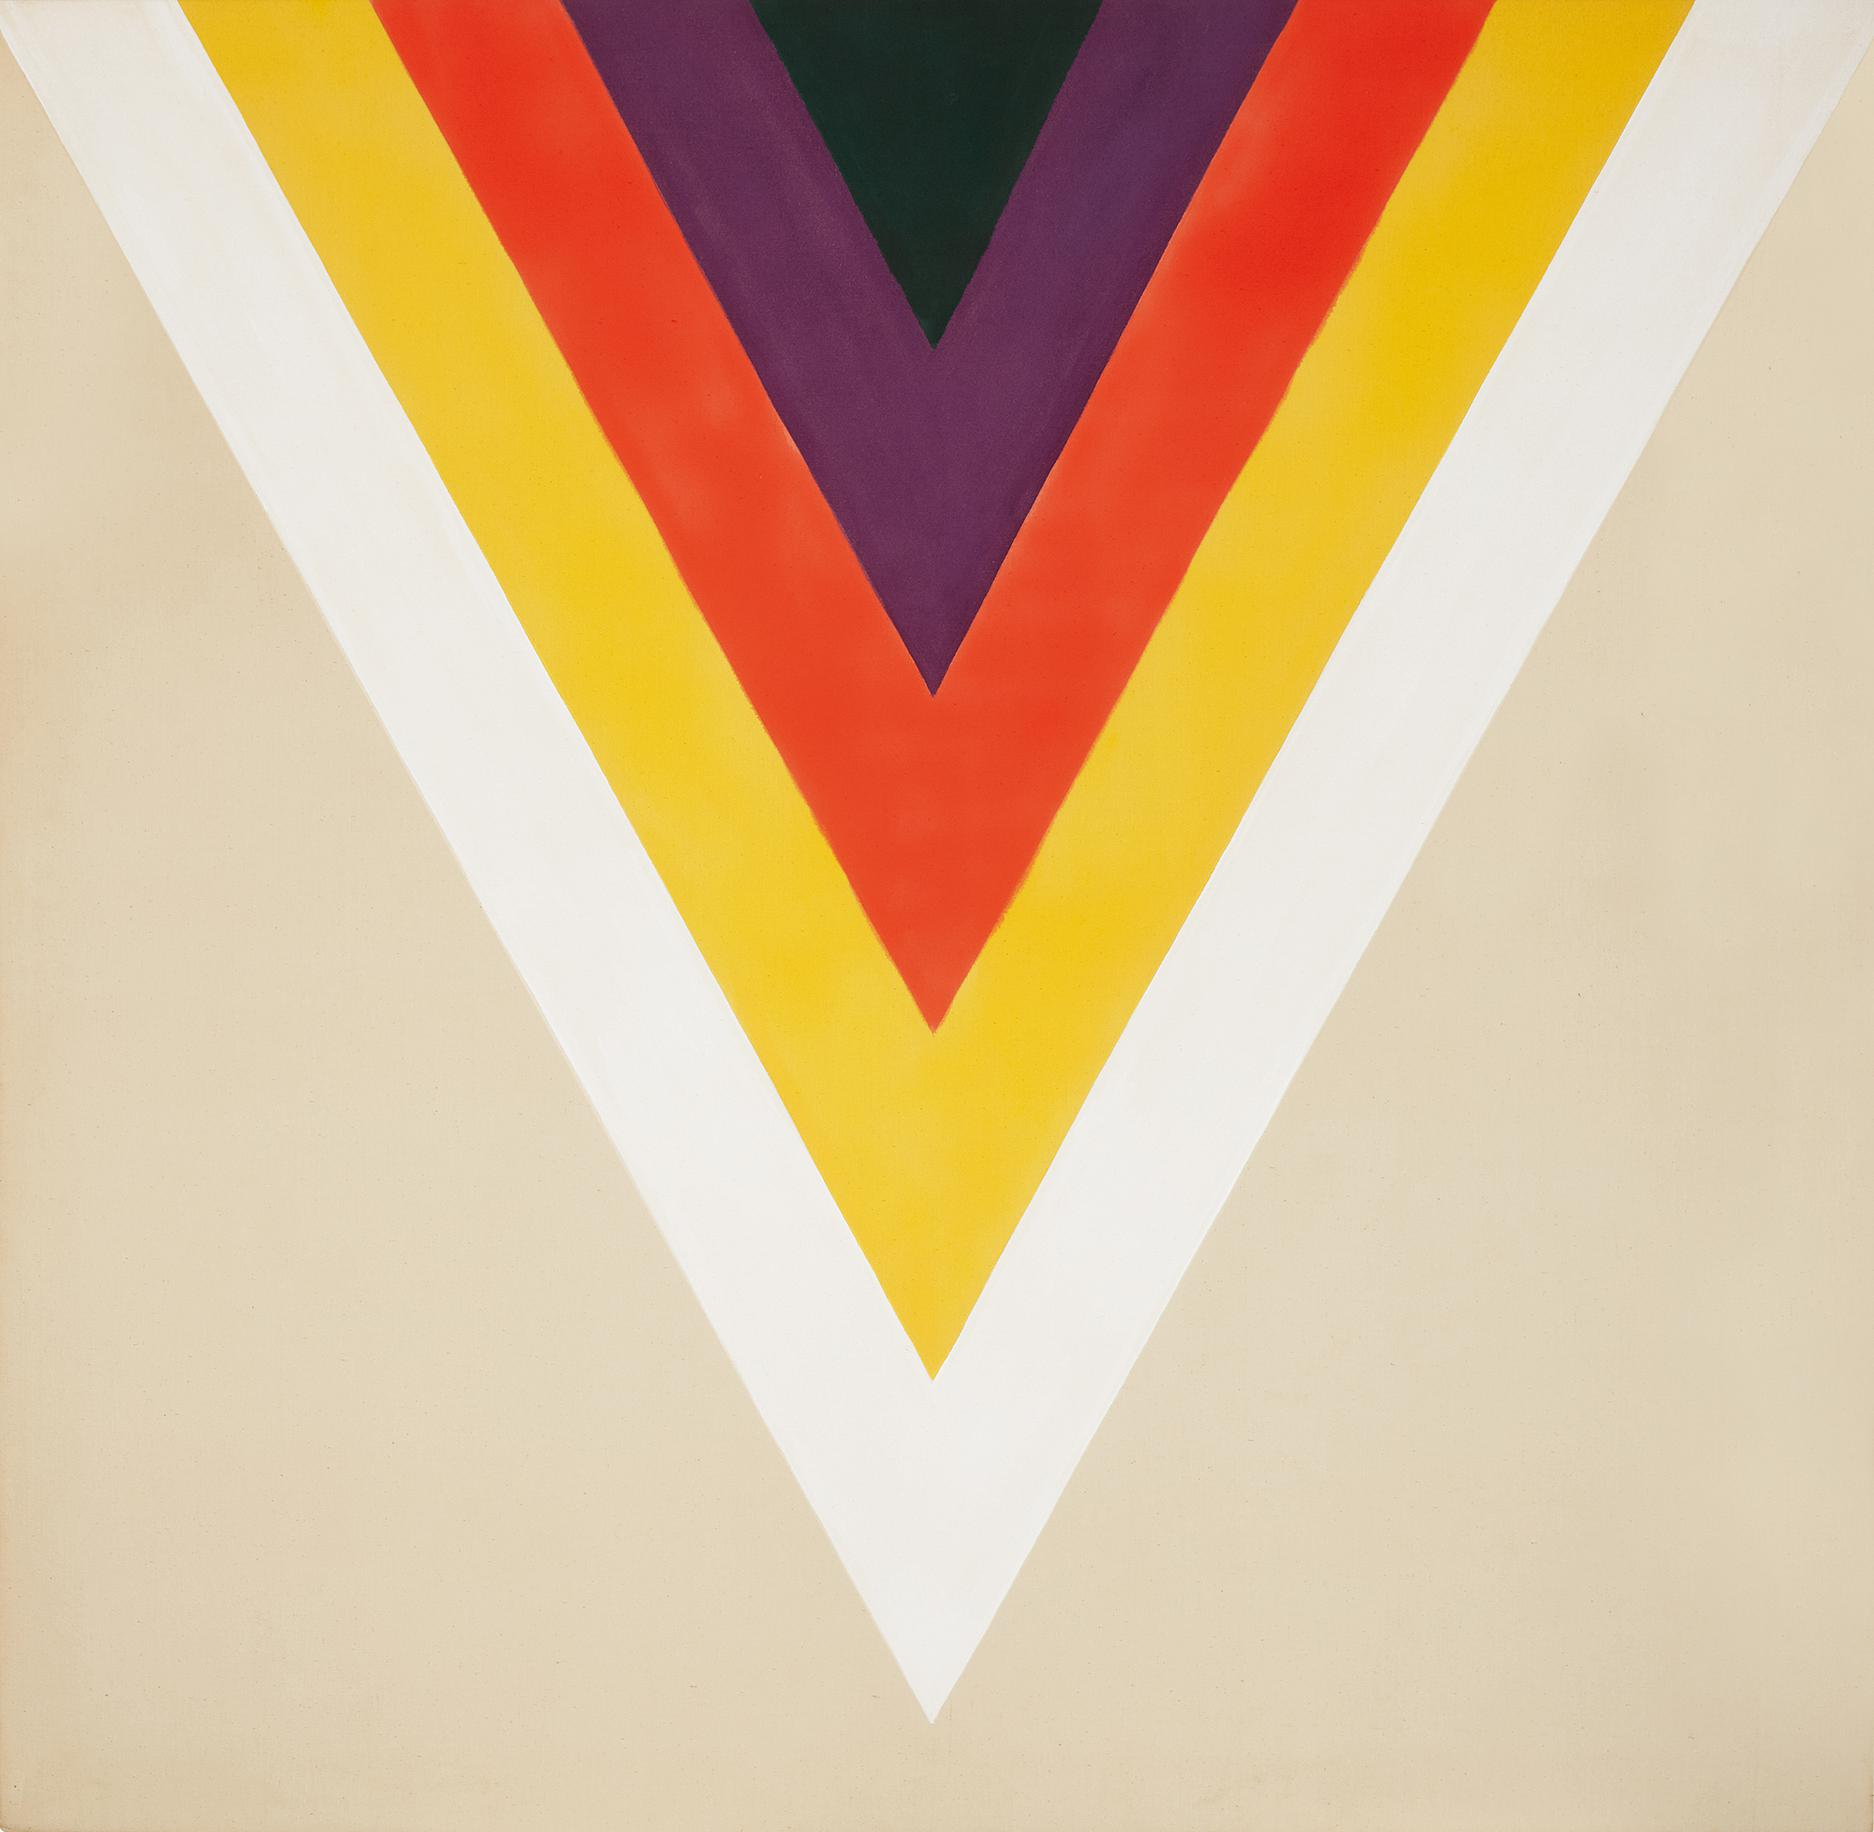 Kenneth Noland-Baba Yagga-1964